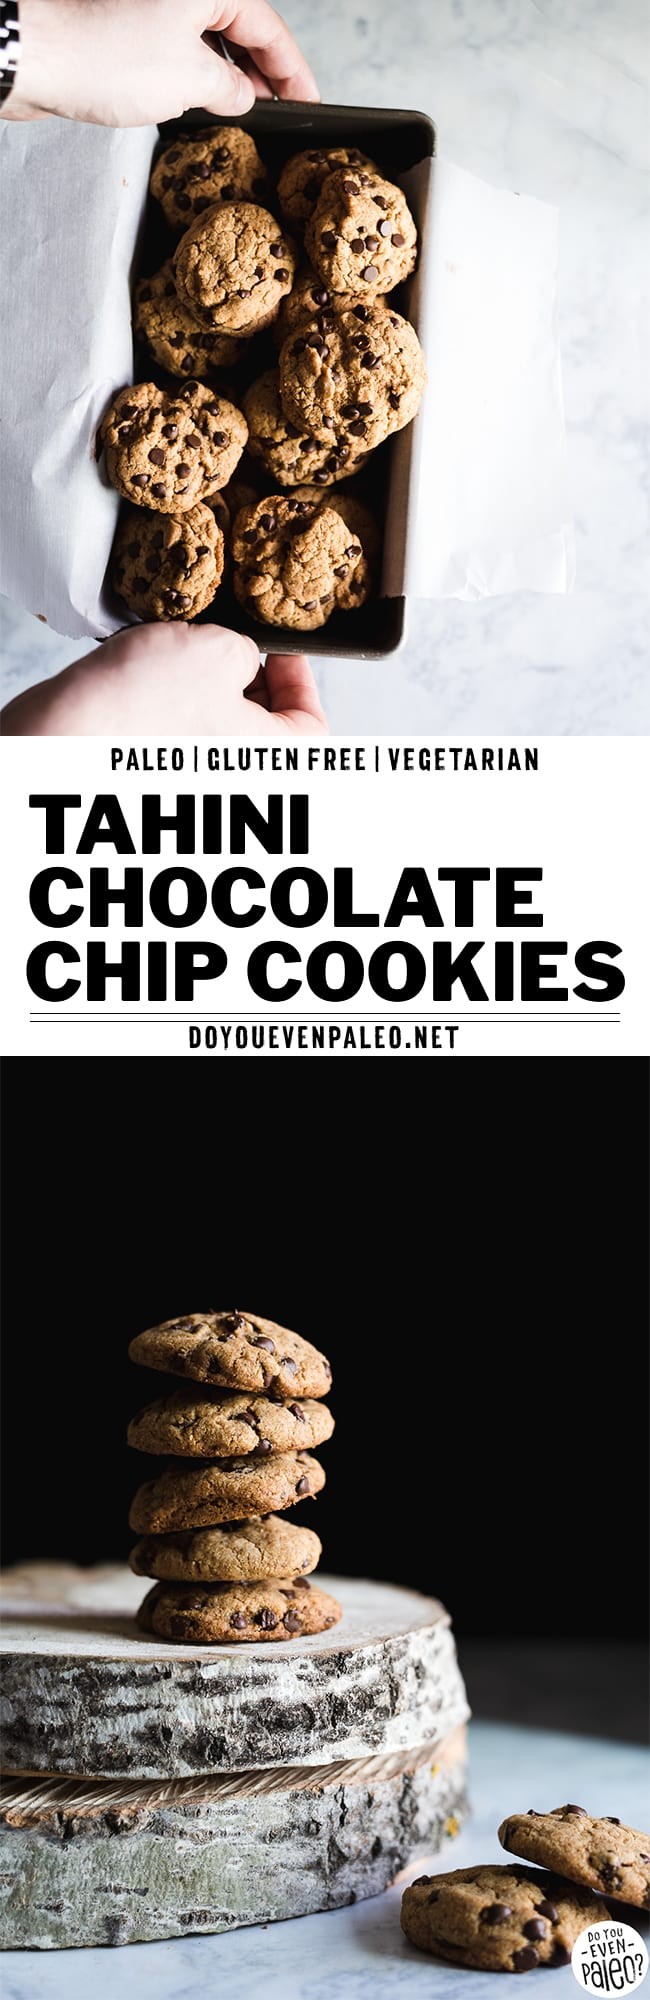 Paleo Tahini Chocolate Chip Cookies Recipe | DoYouEvenPaleo.net